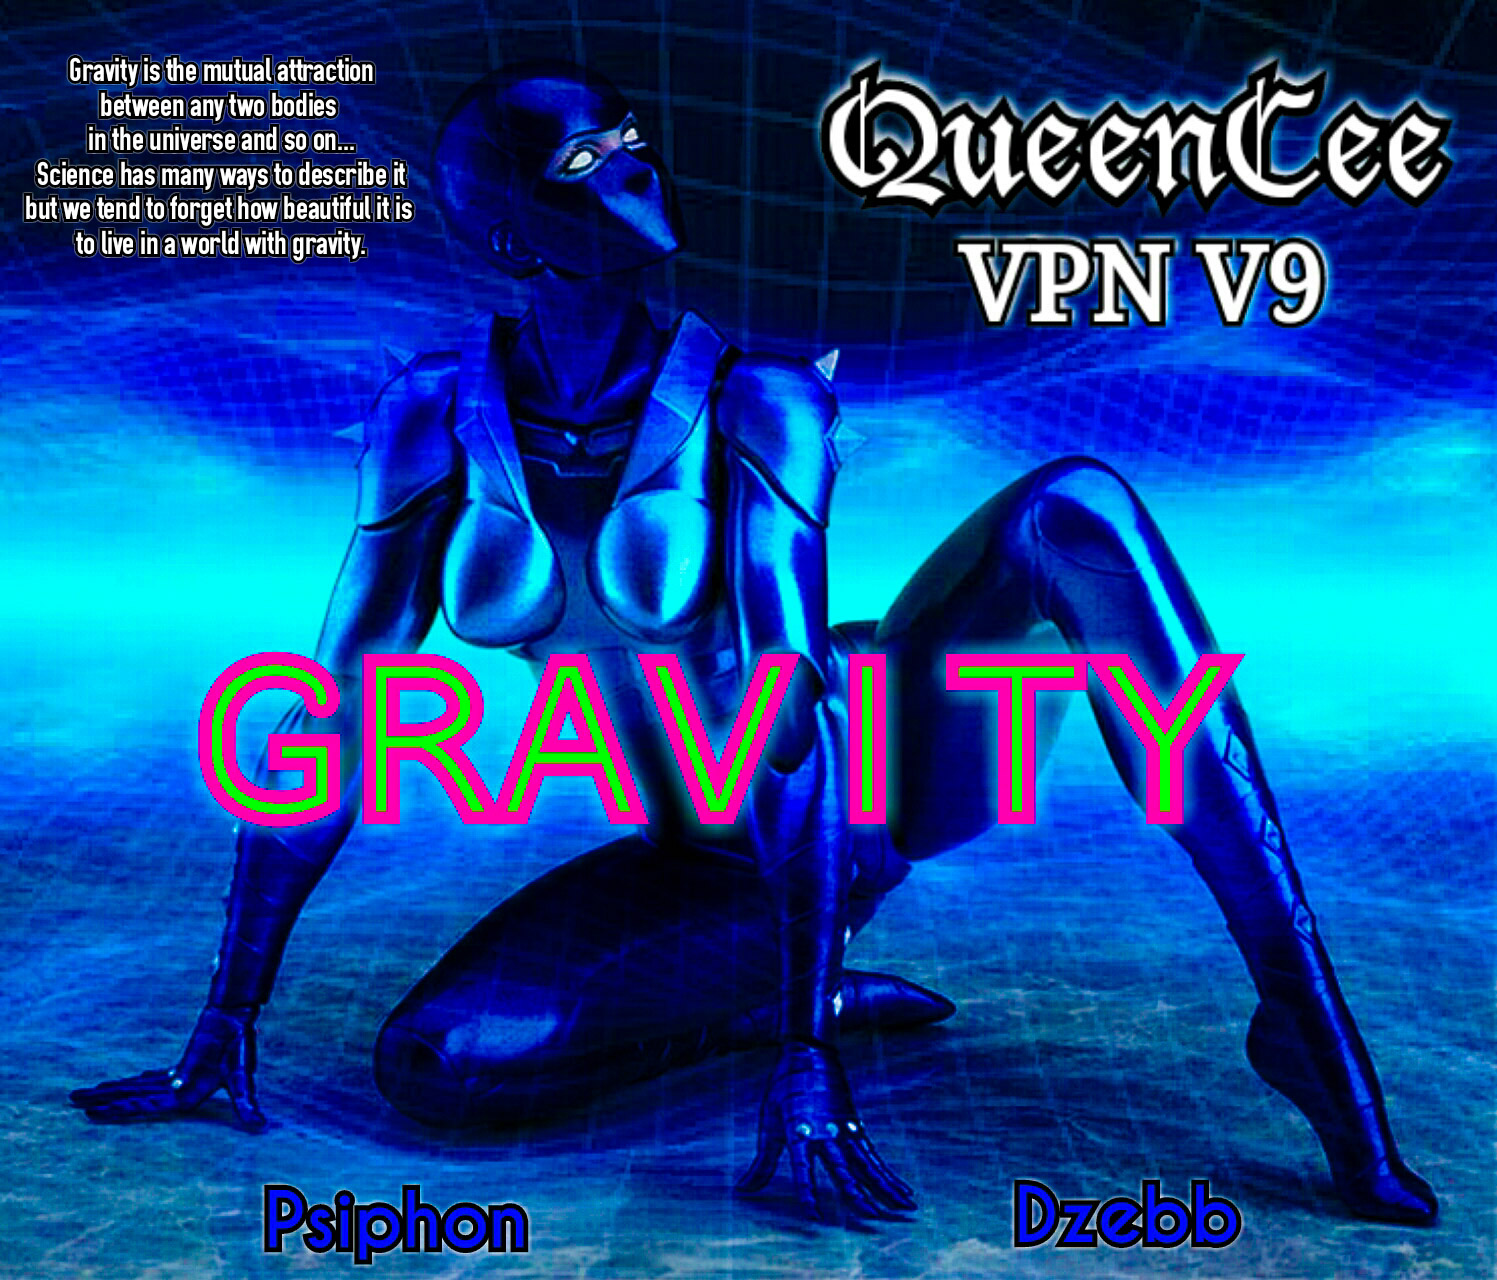 Photo of Download Latest QueenCee VPN V9 Gravity APK